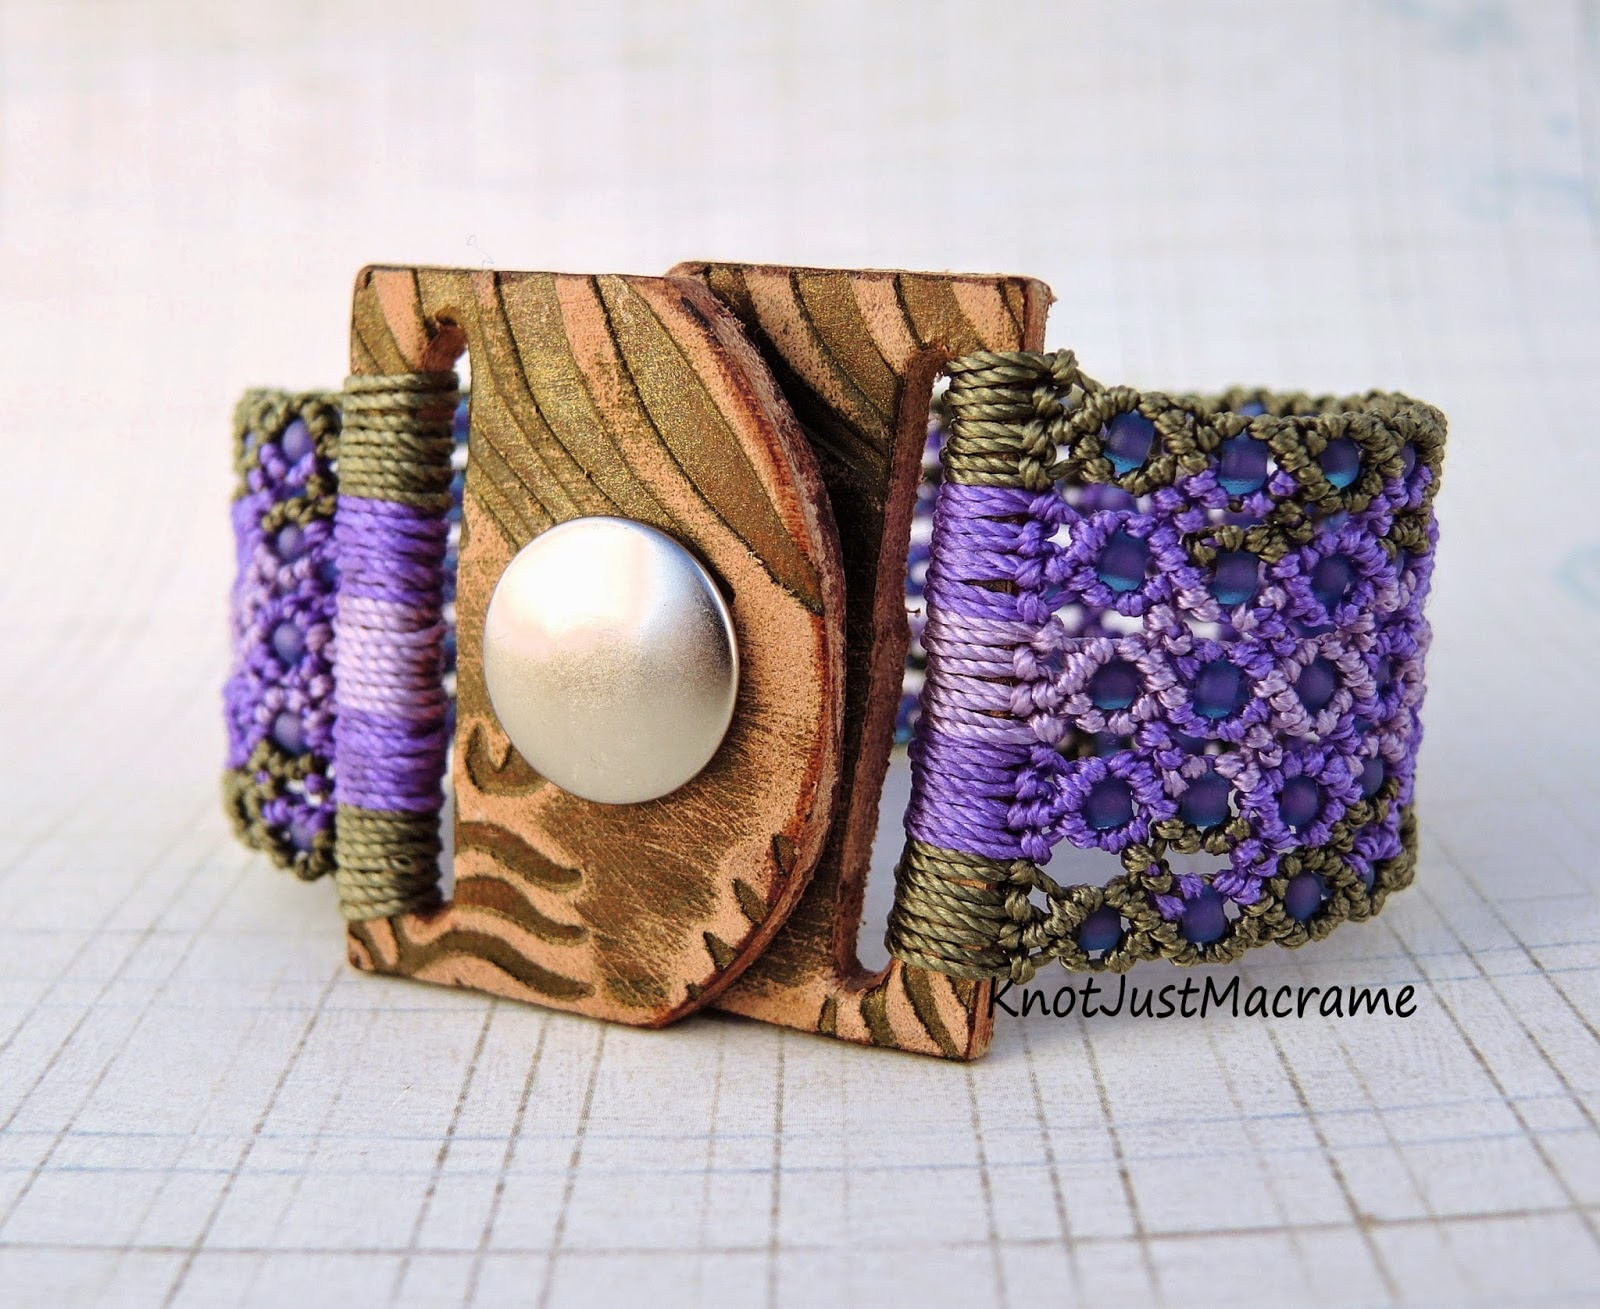 Micro macrame cuff by Sherri Stokey with leather snap clasp by Melinda Orr.